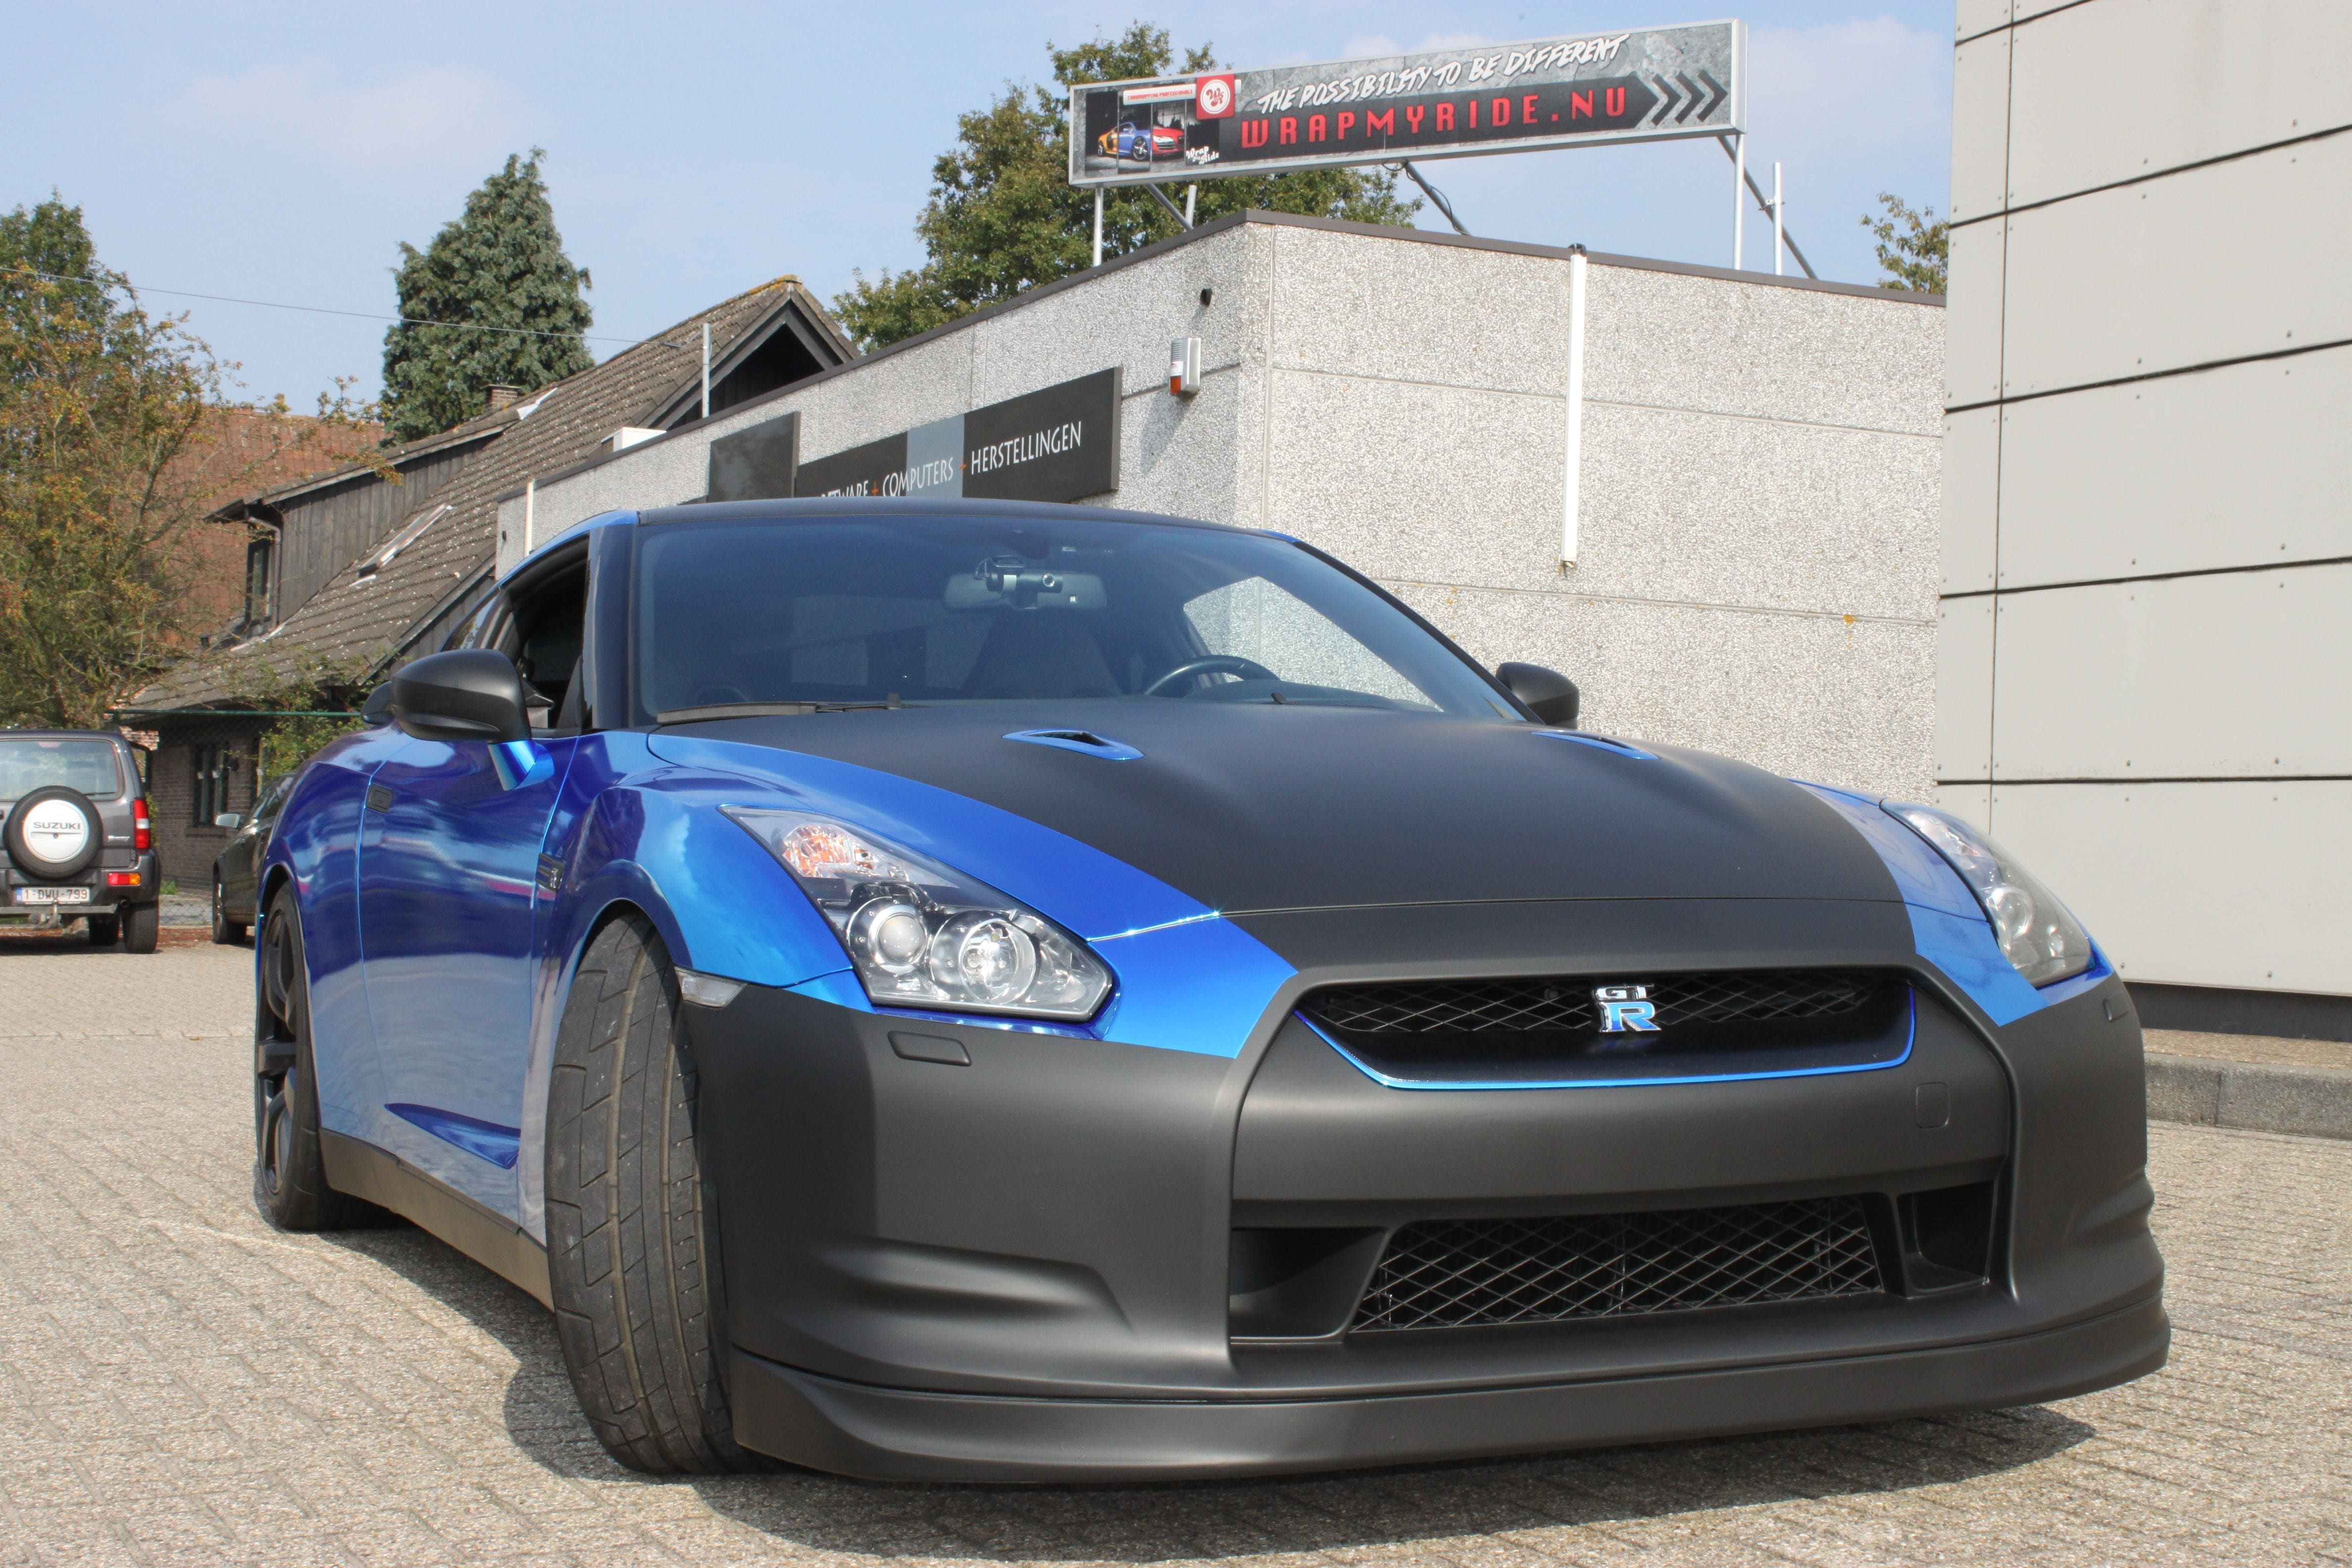 Nissan GT-R met Blue Chrome Wrap, Carwrapping door Wrapmyride.nu Foto-nr:6478, ©2020